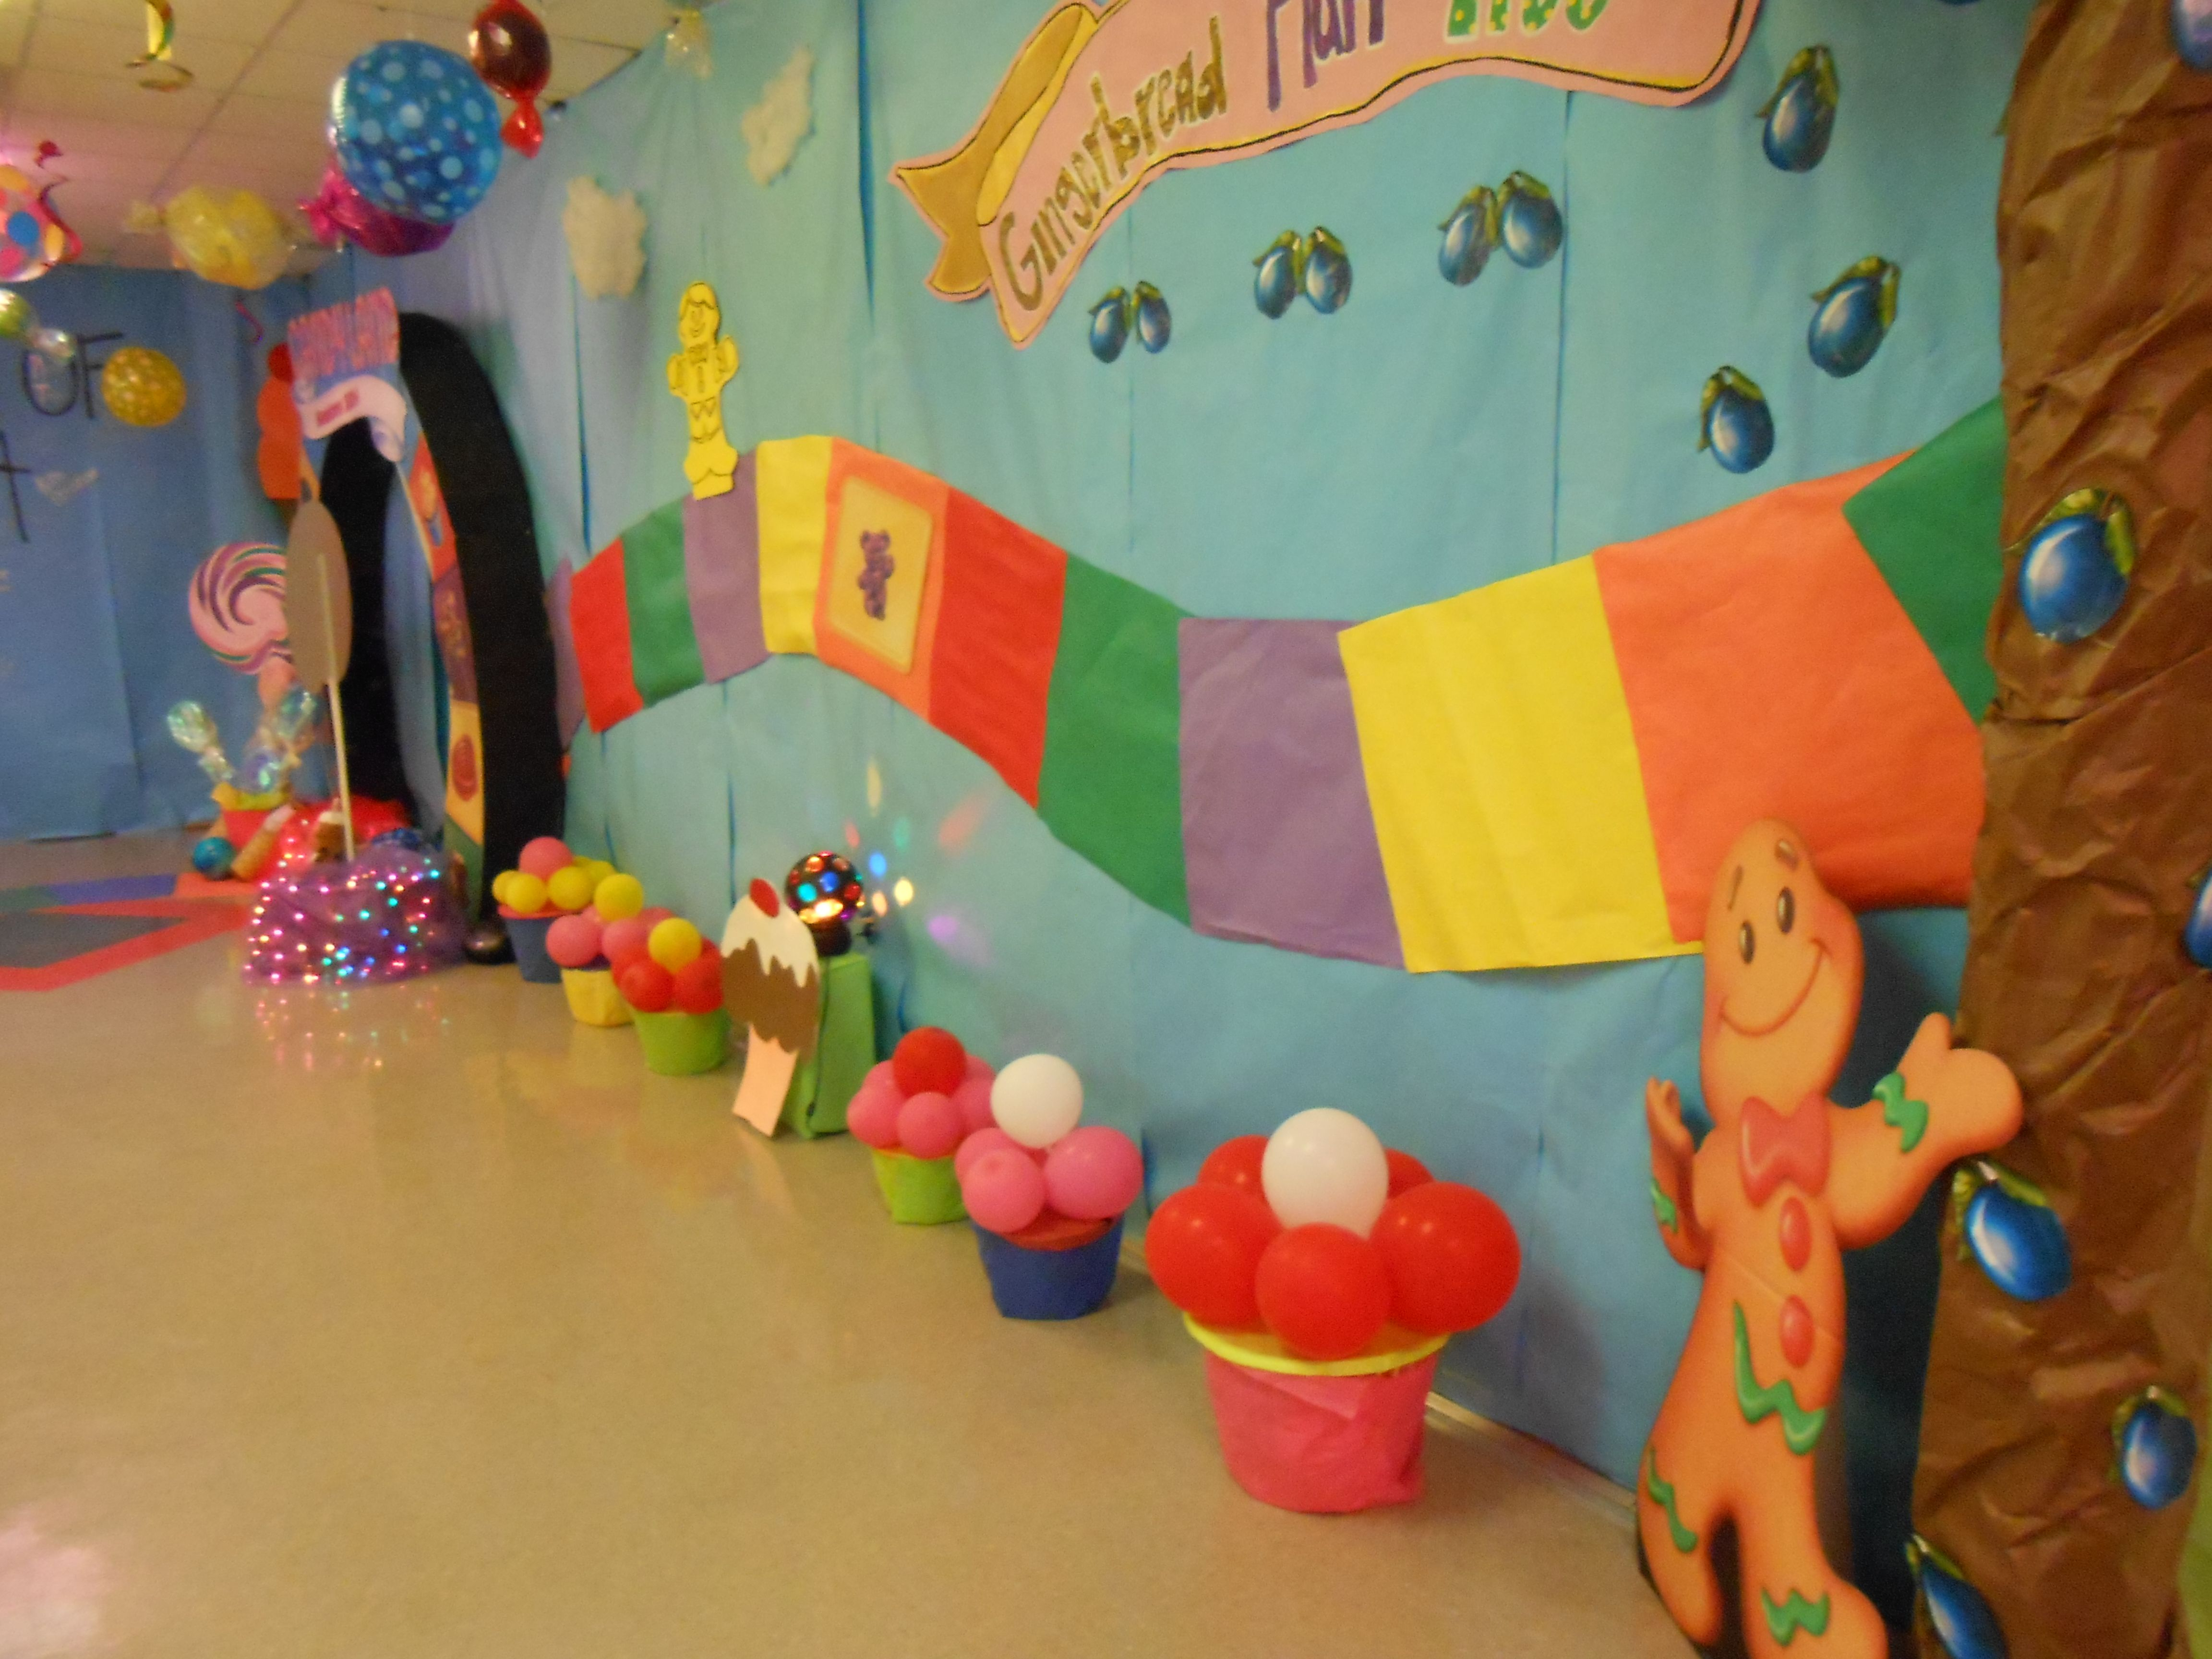 Candy Land Hall Decorations Candyland Decorations Christmas School Candy Land Theme